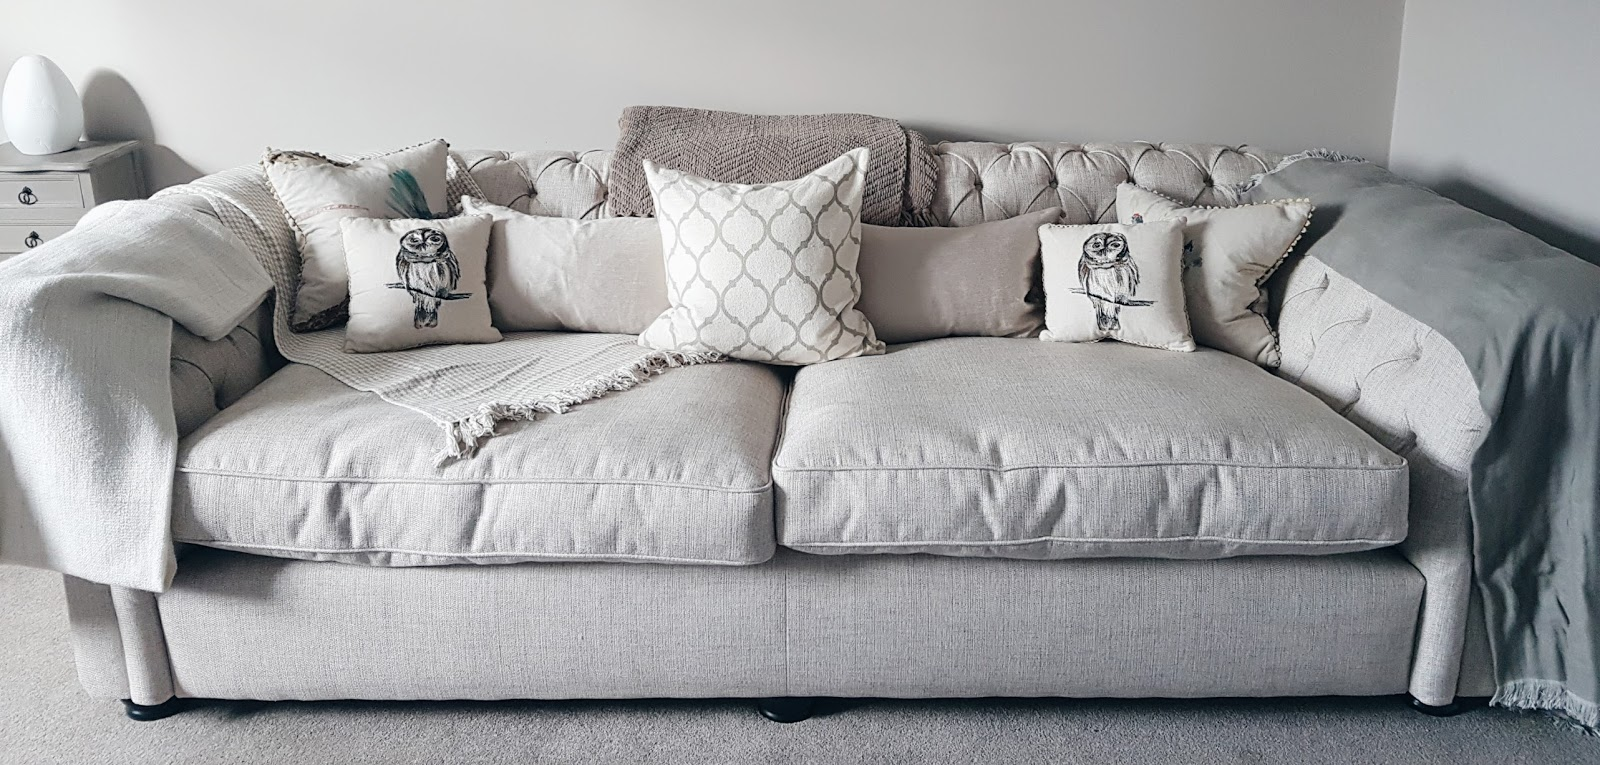 Chesterfield Sofa Marks and Spencer White Interior